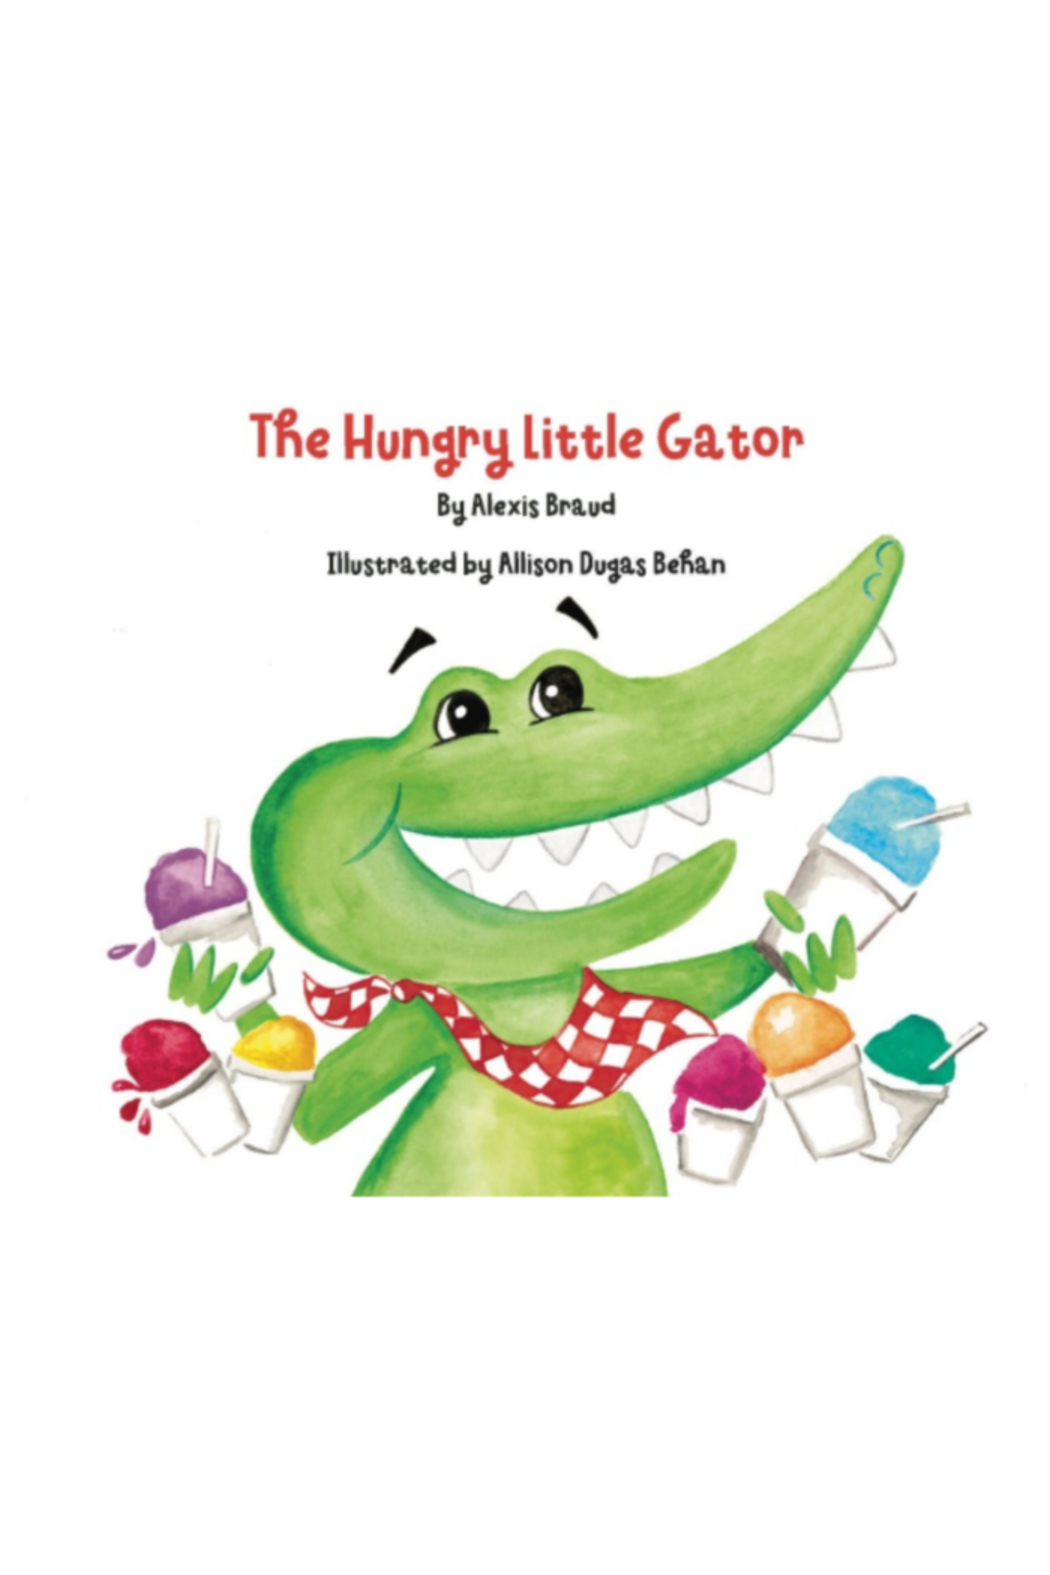 The Birds Nest THE HUNGRY LITTLE GATOR BOOK - Main Image